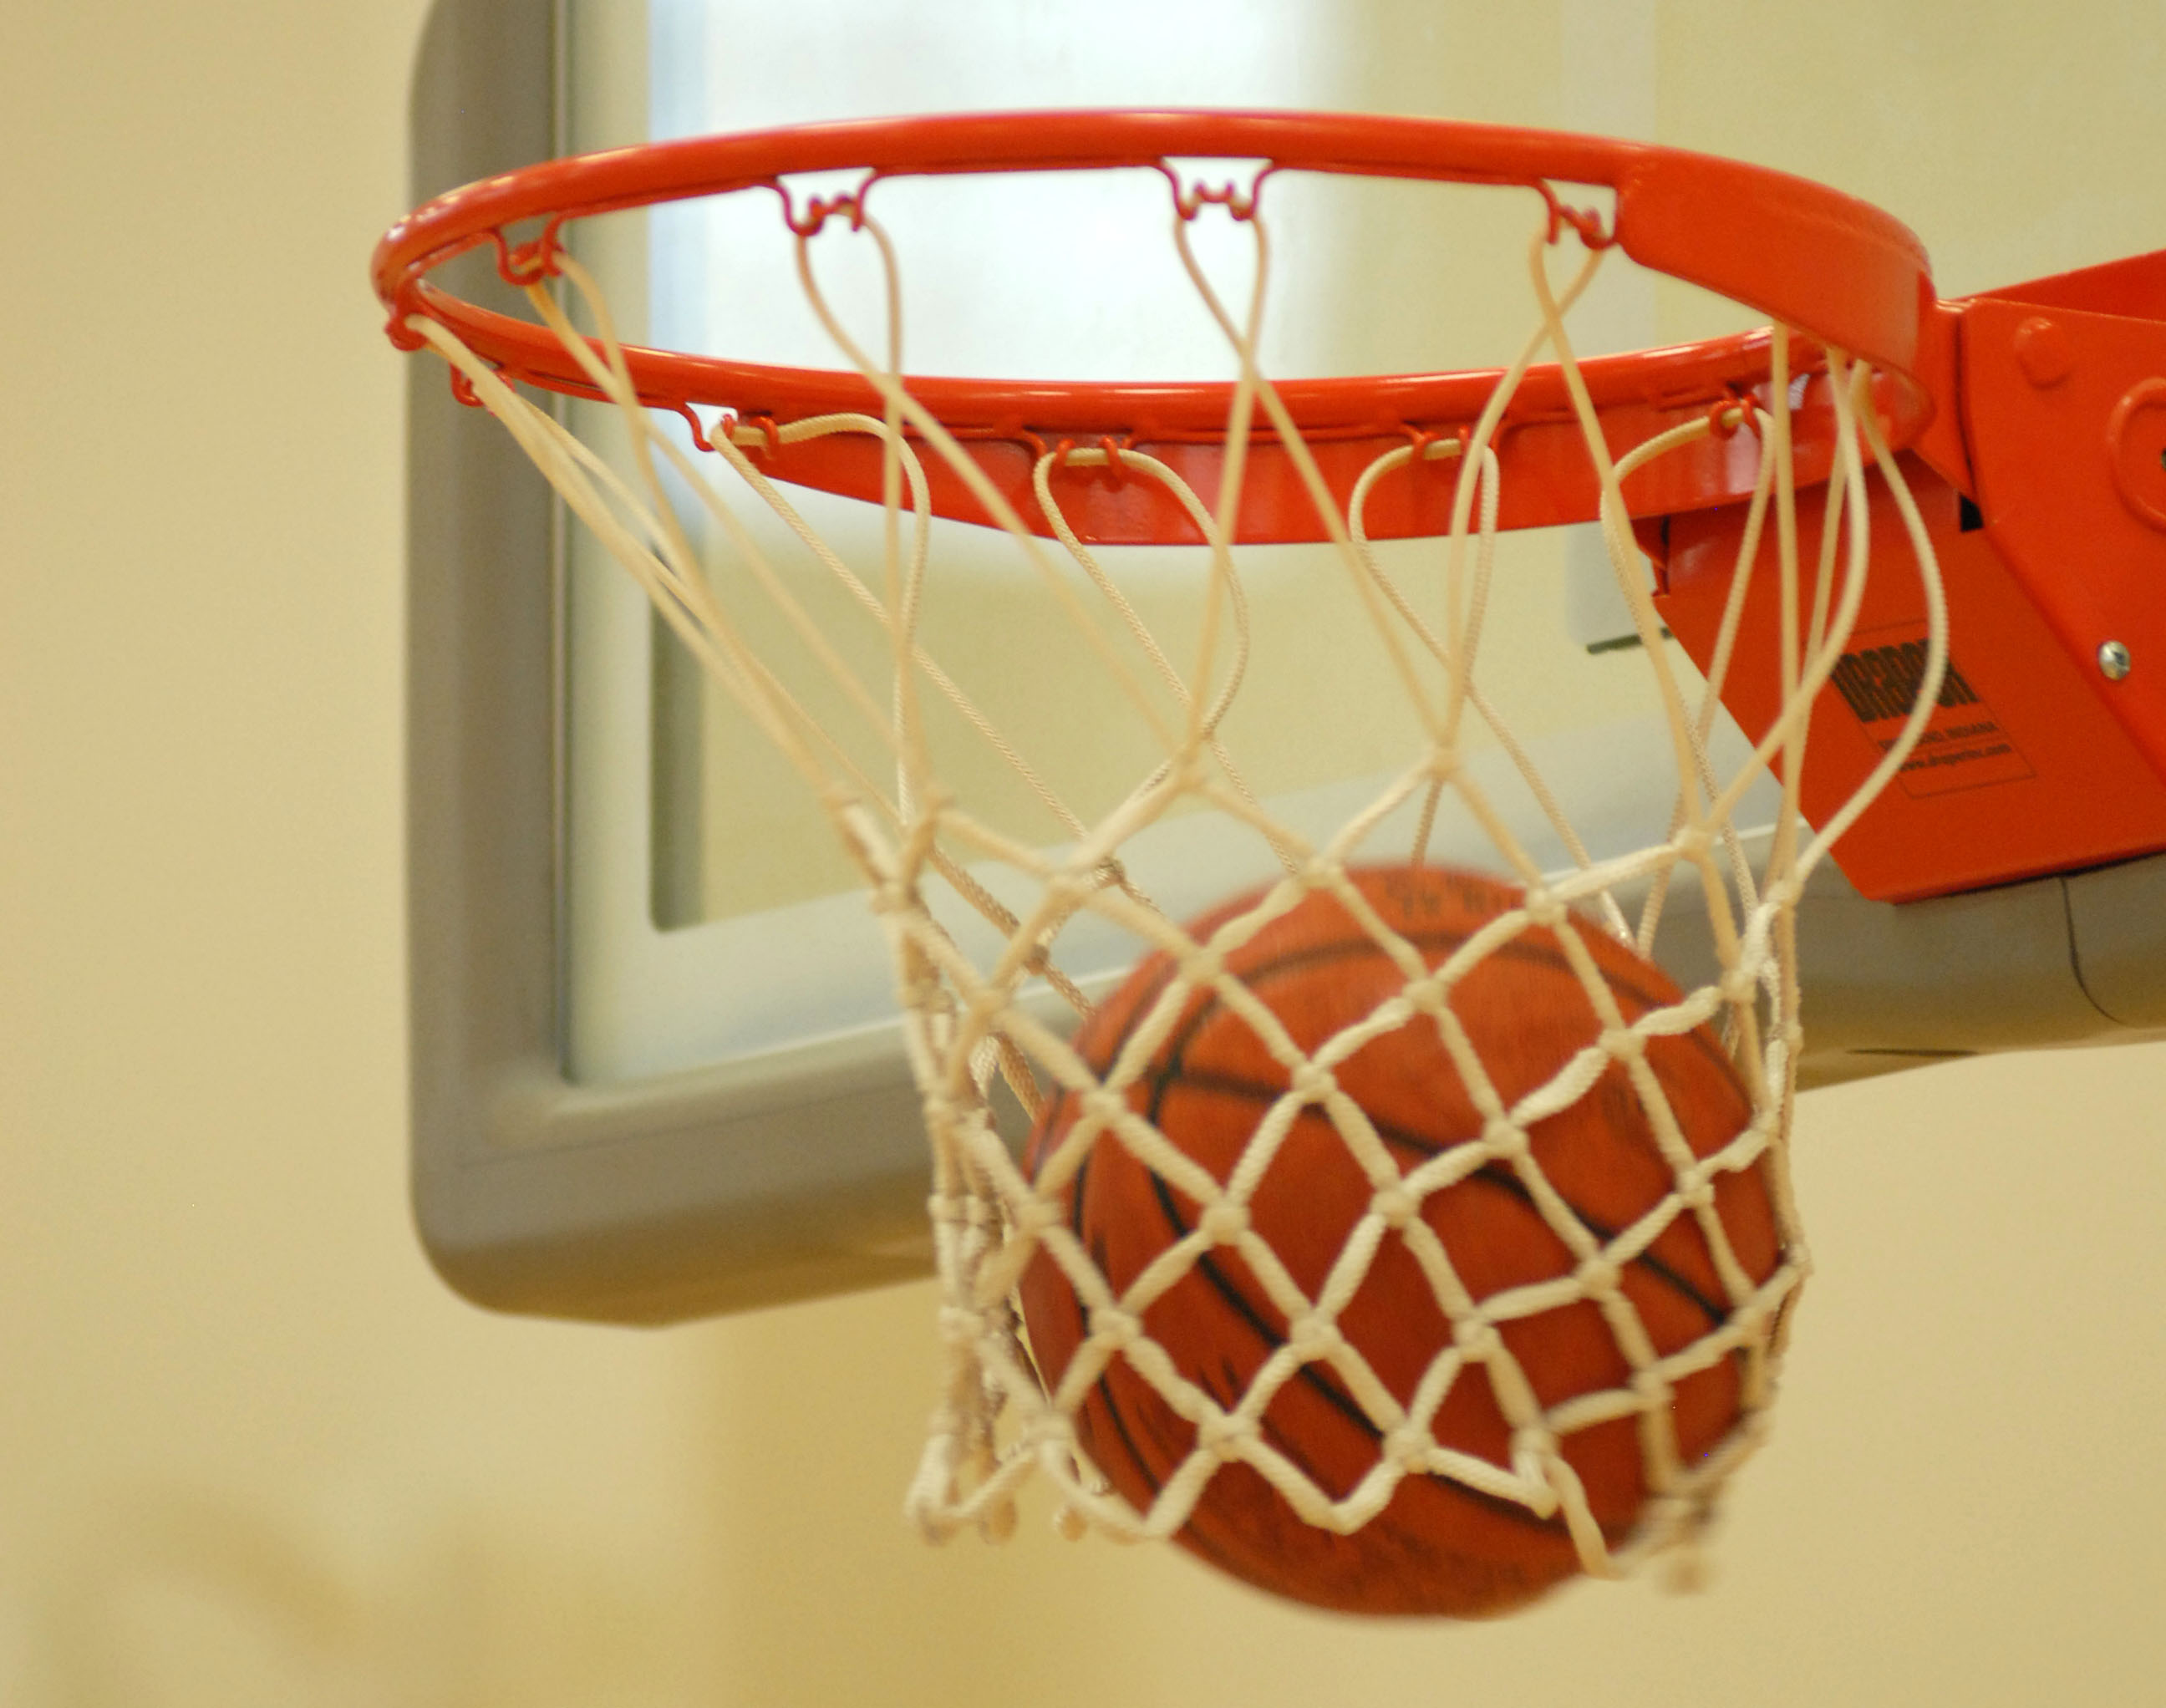 Image result for Basketball going through the net